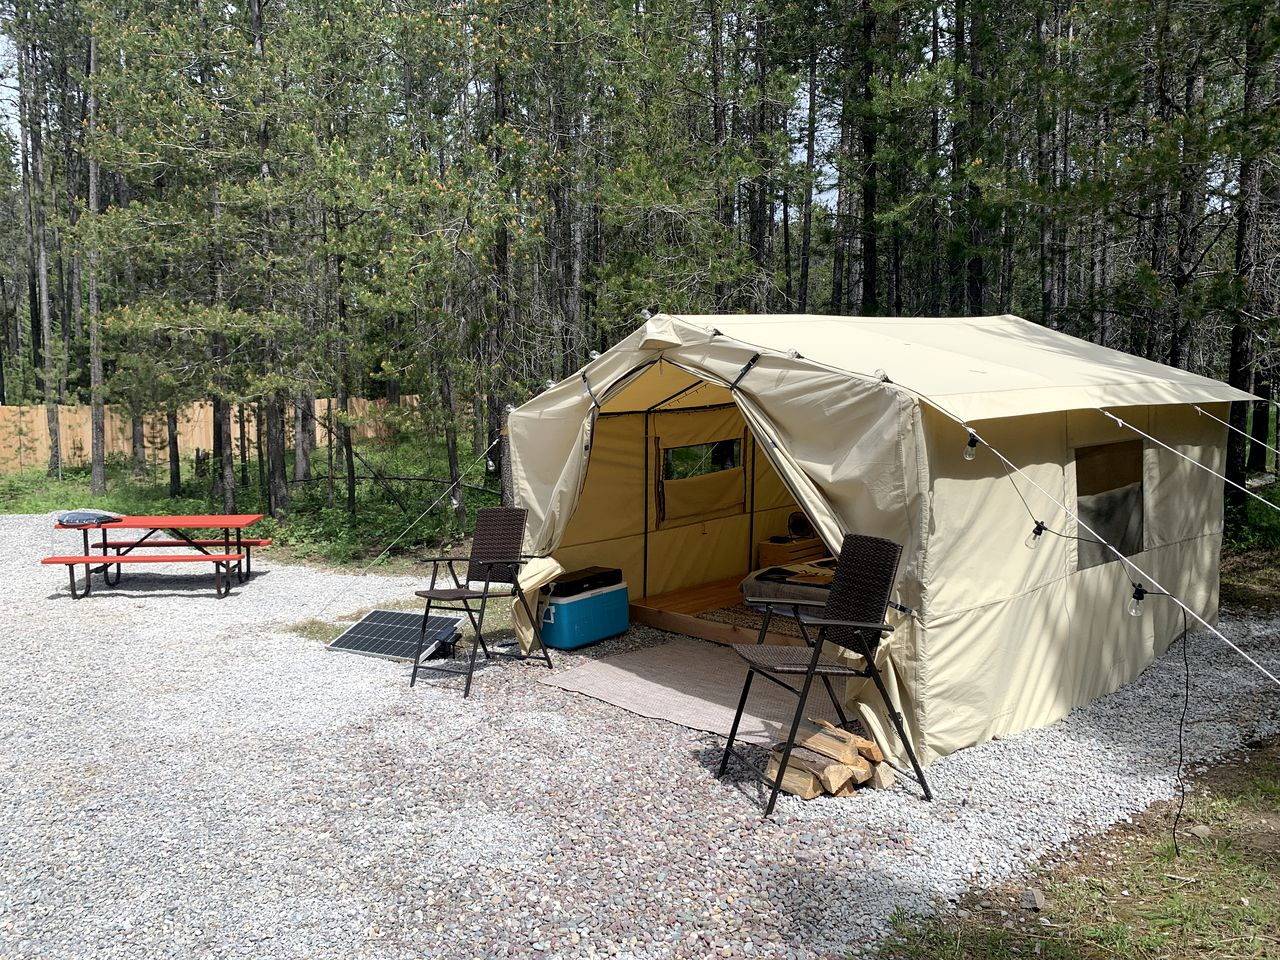 This tent rental is perfect for glamping near Glacier National Park